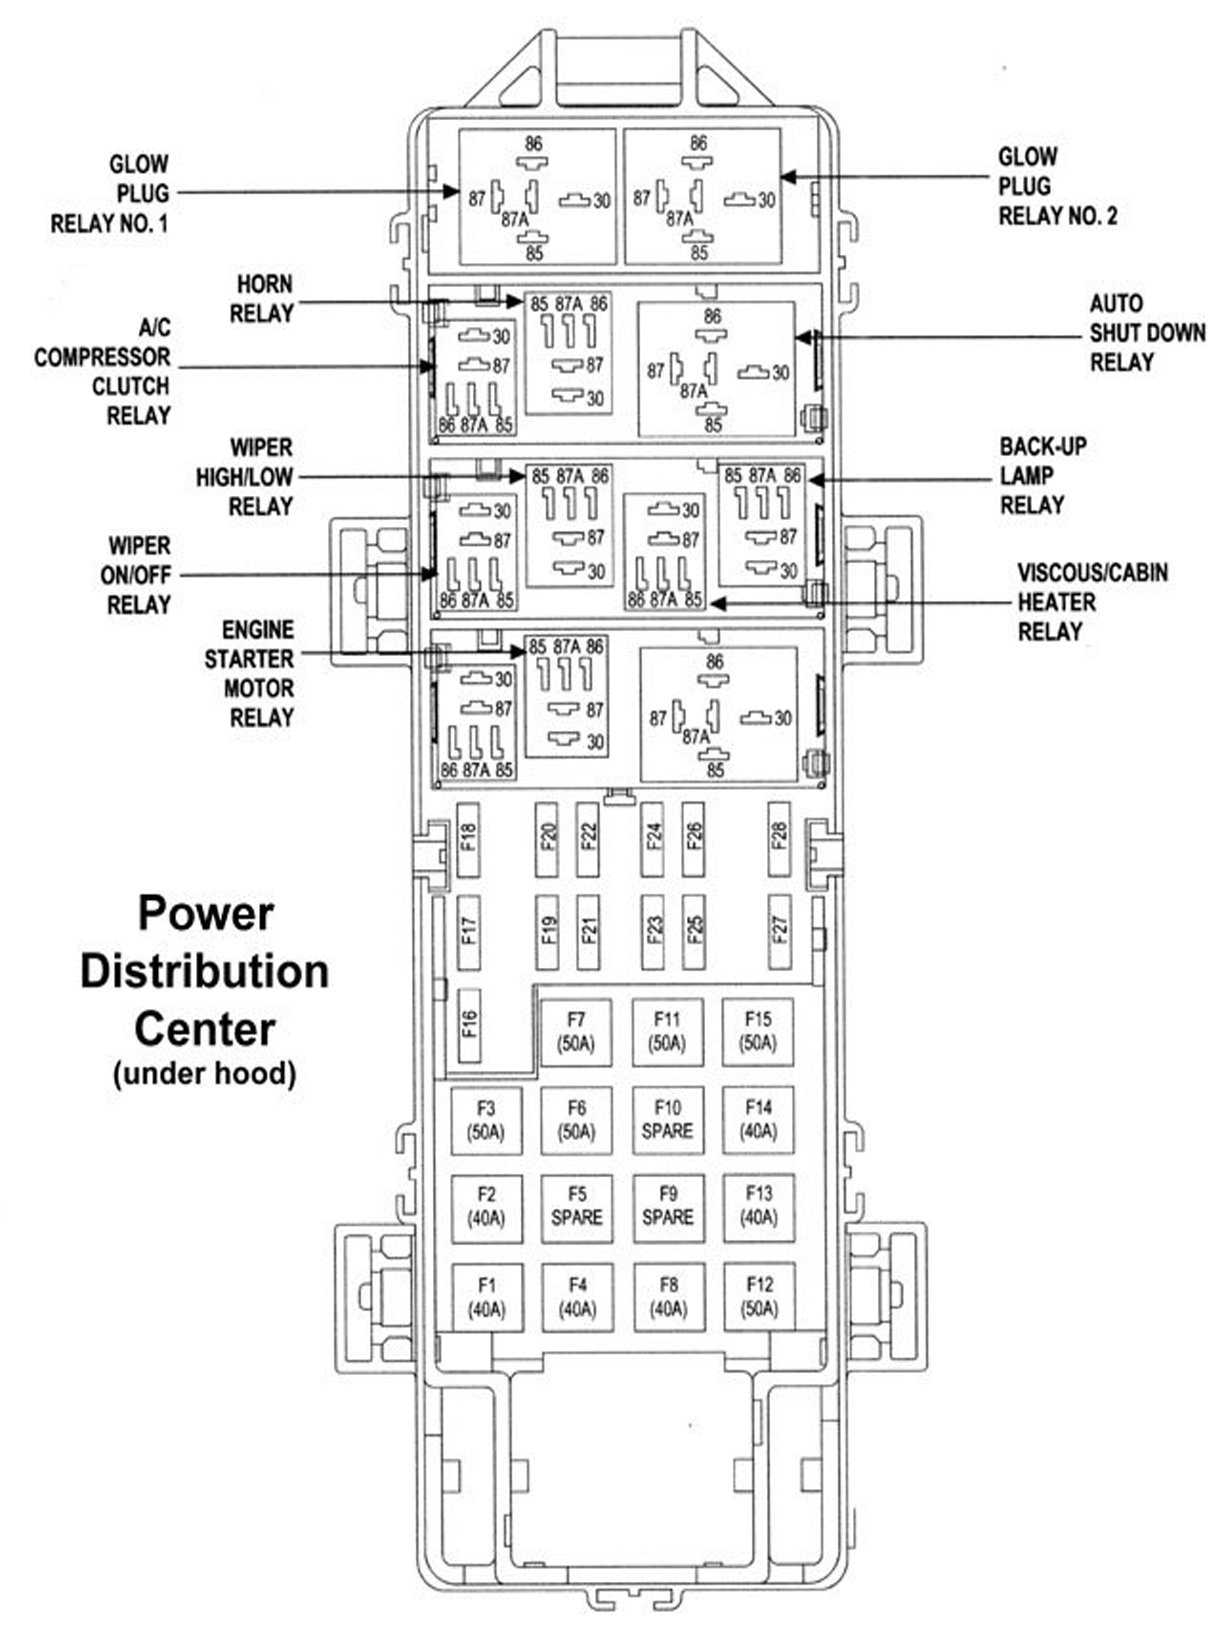 Jeep Grand Cherokee 1999 2004 Fuse Box Diagram 397760 on 2005 jeep wrangler radio wiring diagram